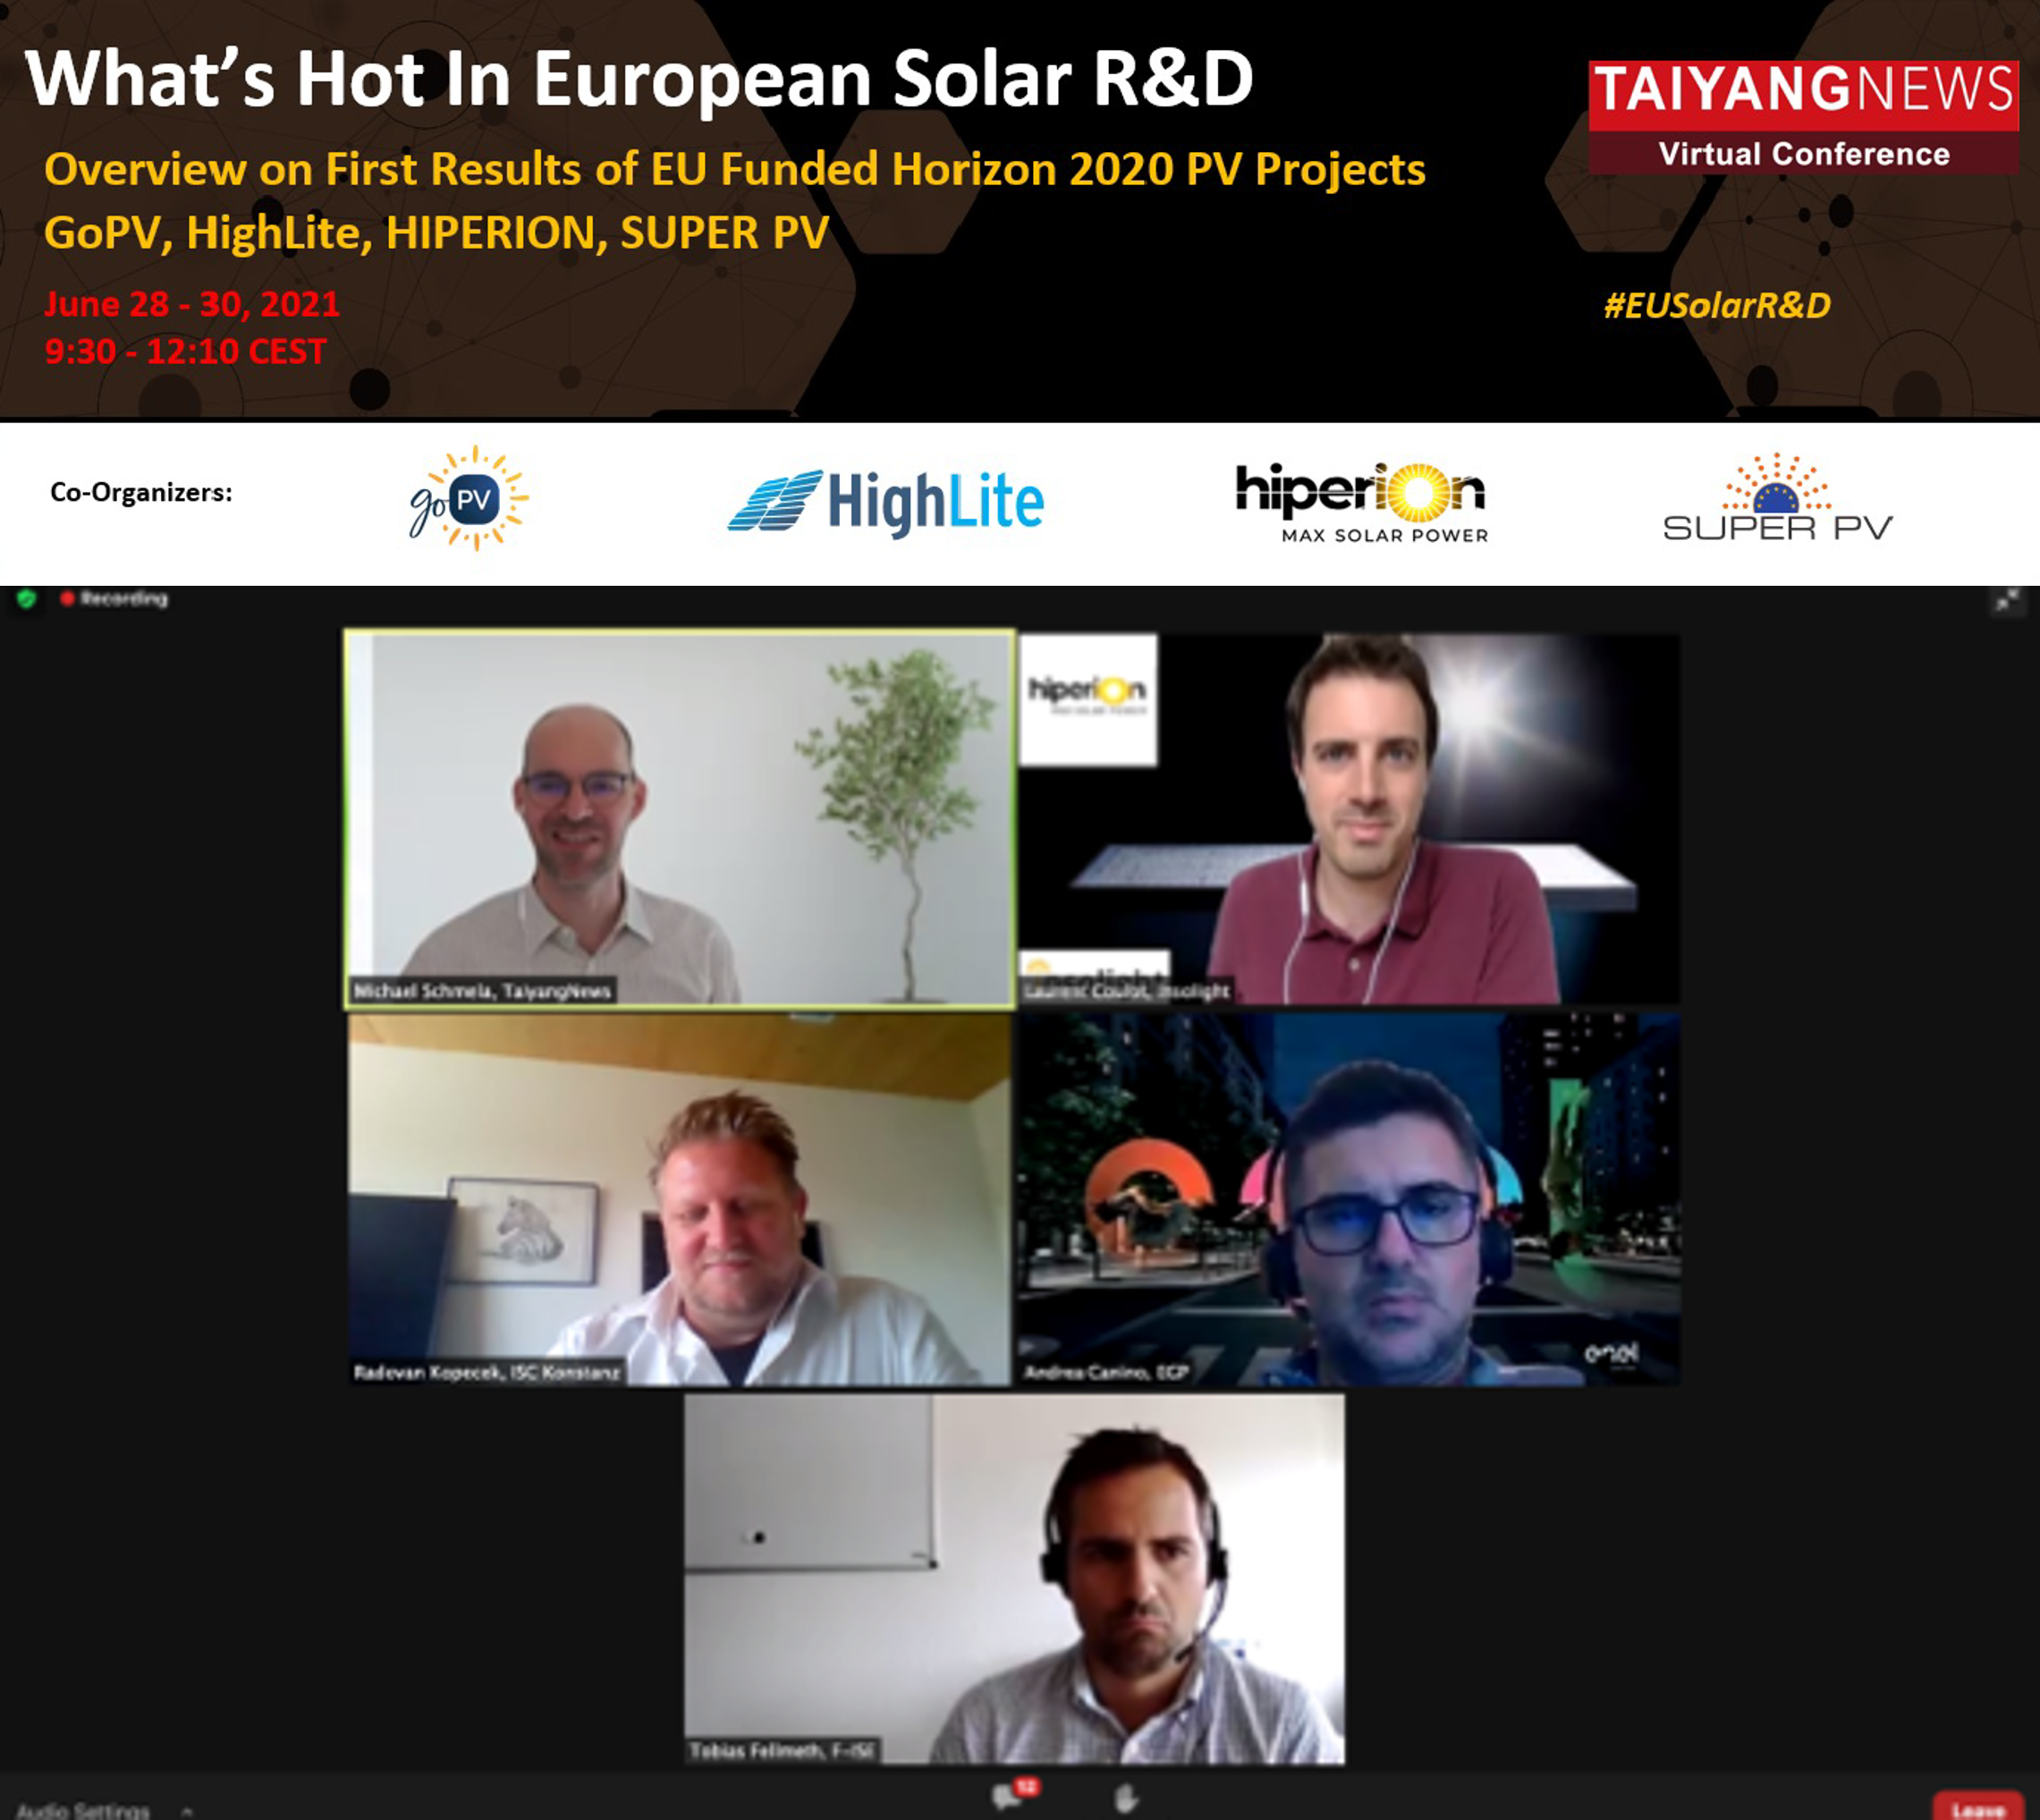 TaiyangNews' Michael Schmela engaged in a panel discussion on the Rationale for Made in EU Concepts and Technologies with Insolight's Laurent Coulot, ISC Konstanz's Radovan Kopecek, Enel Green Power's Andrea Canino, and Fraunhofer-ISE's Tobias Fellmeth on day 1 of the TaiyangNews What's Hot in European Solar R&D Conference. (Photo Credit: TaiyangNews).